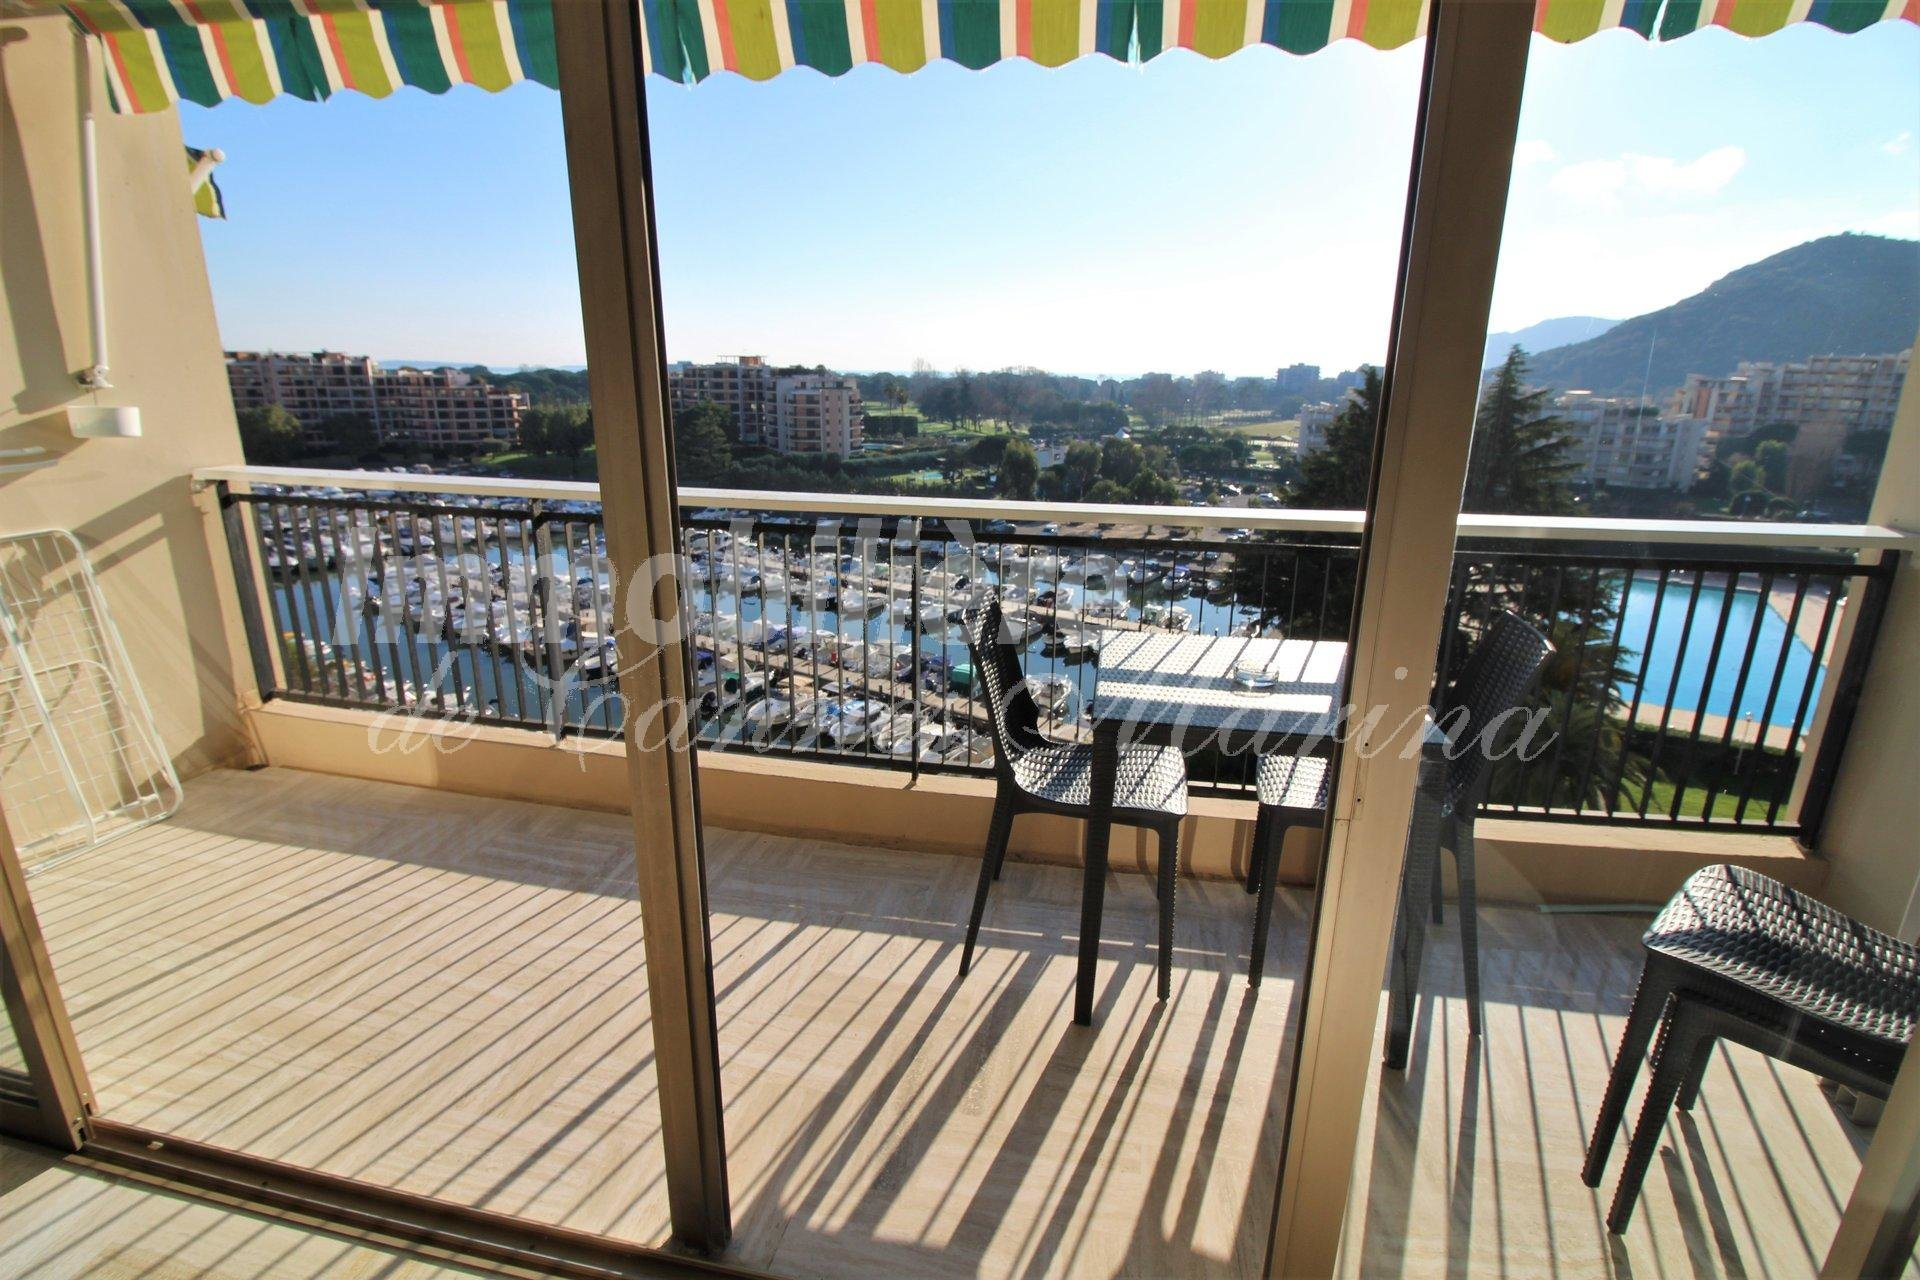 Studio harbor view - parking - swimming pool